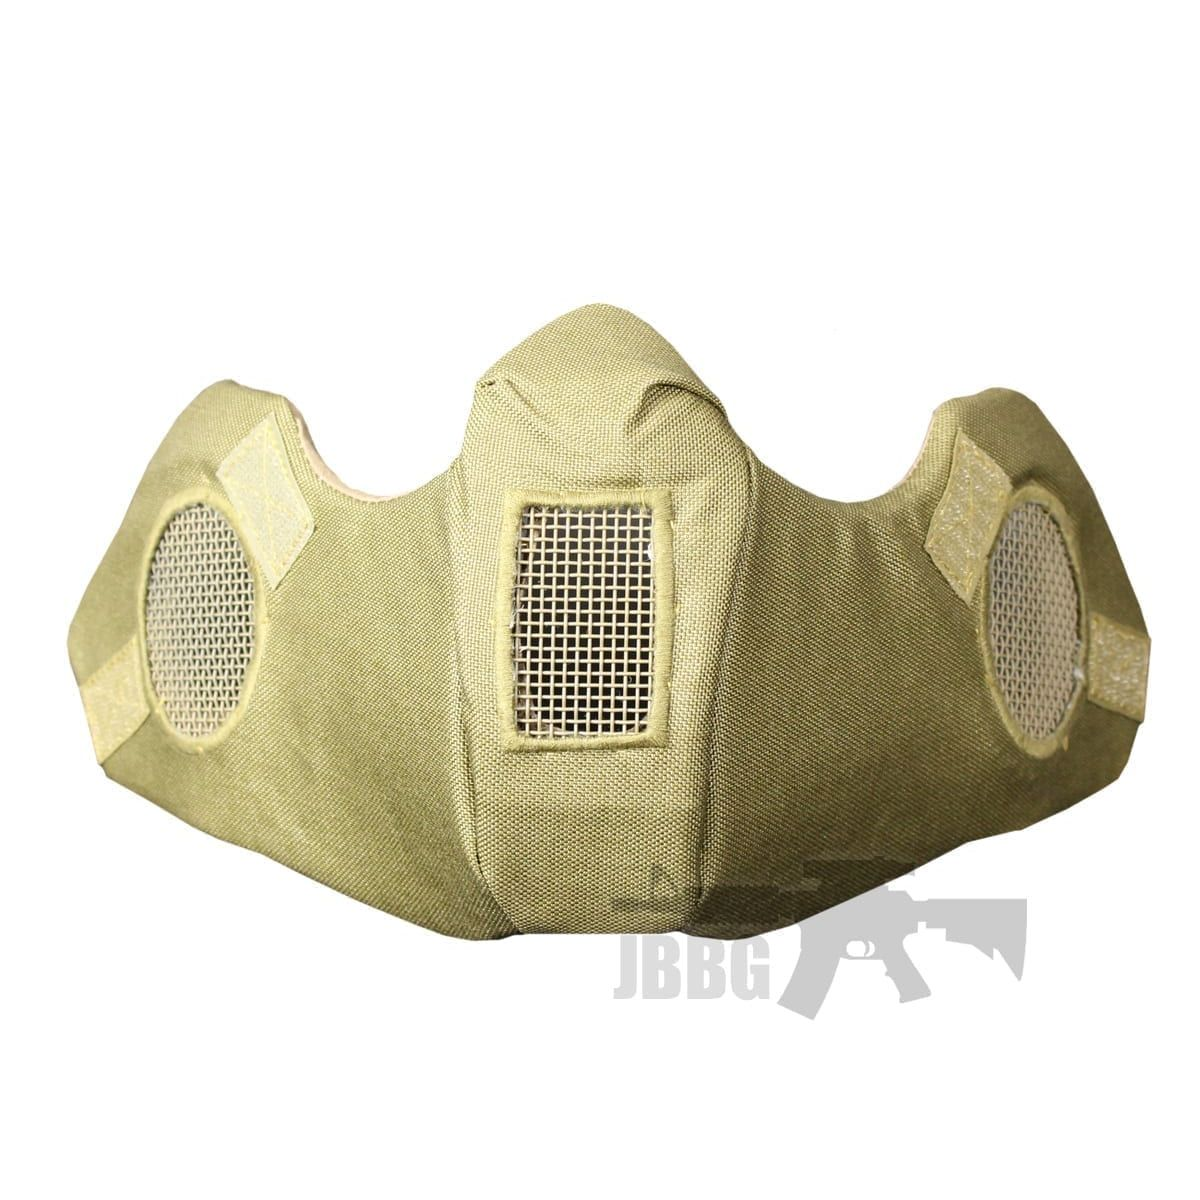 AIRSOFT LOWER FACE MASK TAN helmet accessory attachment